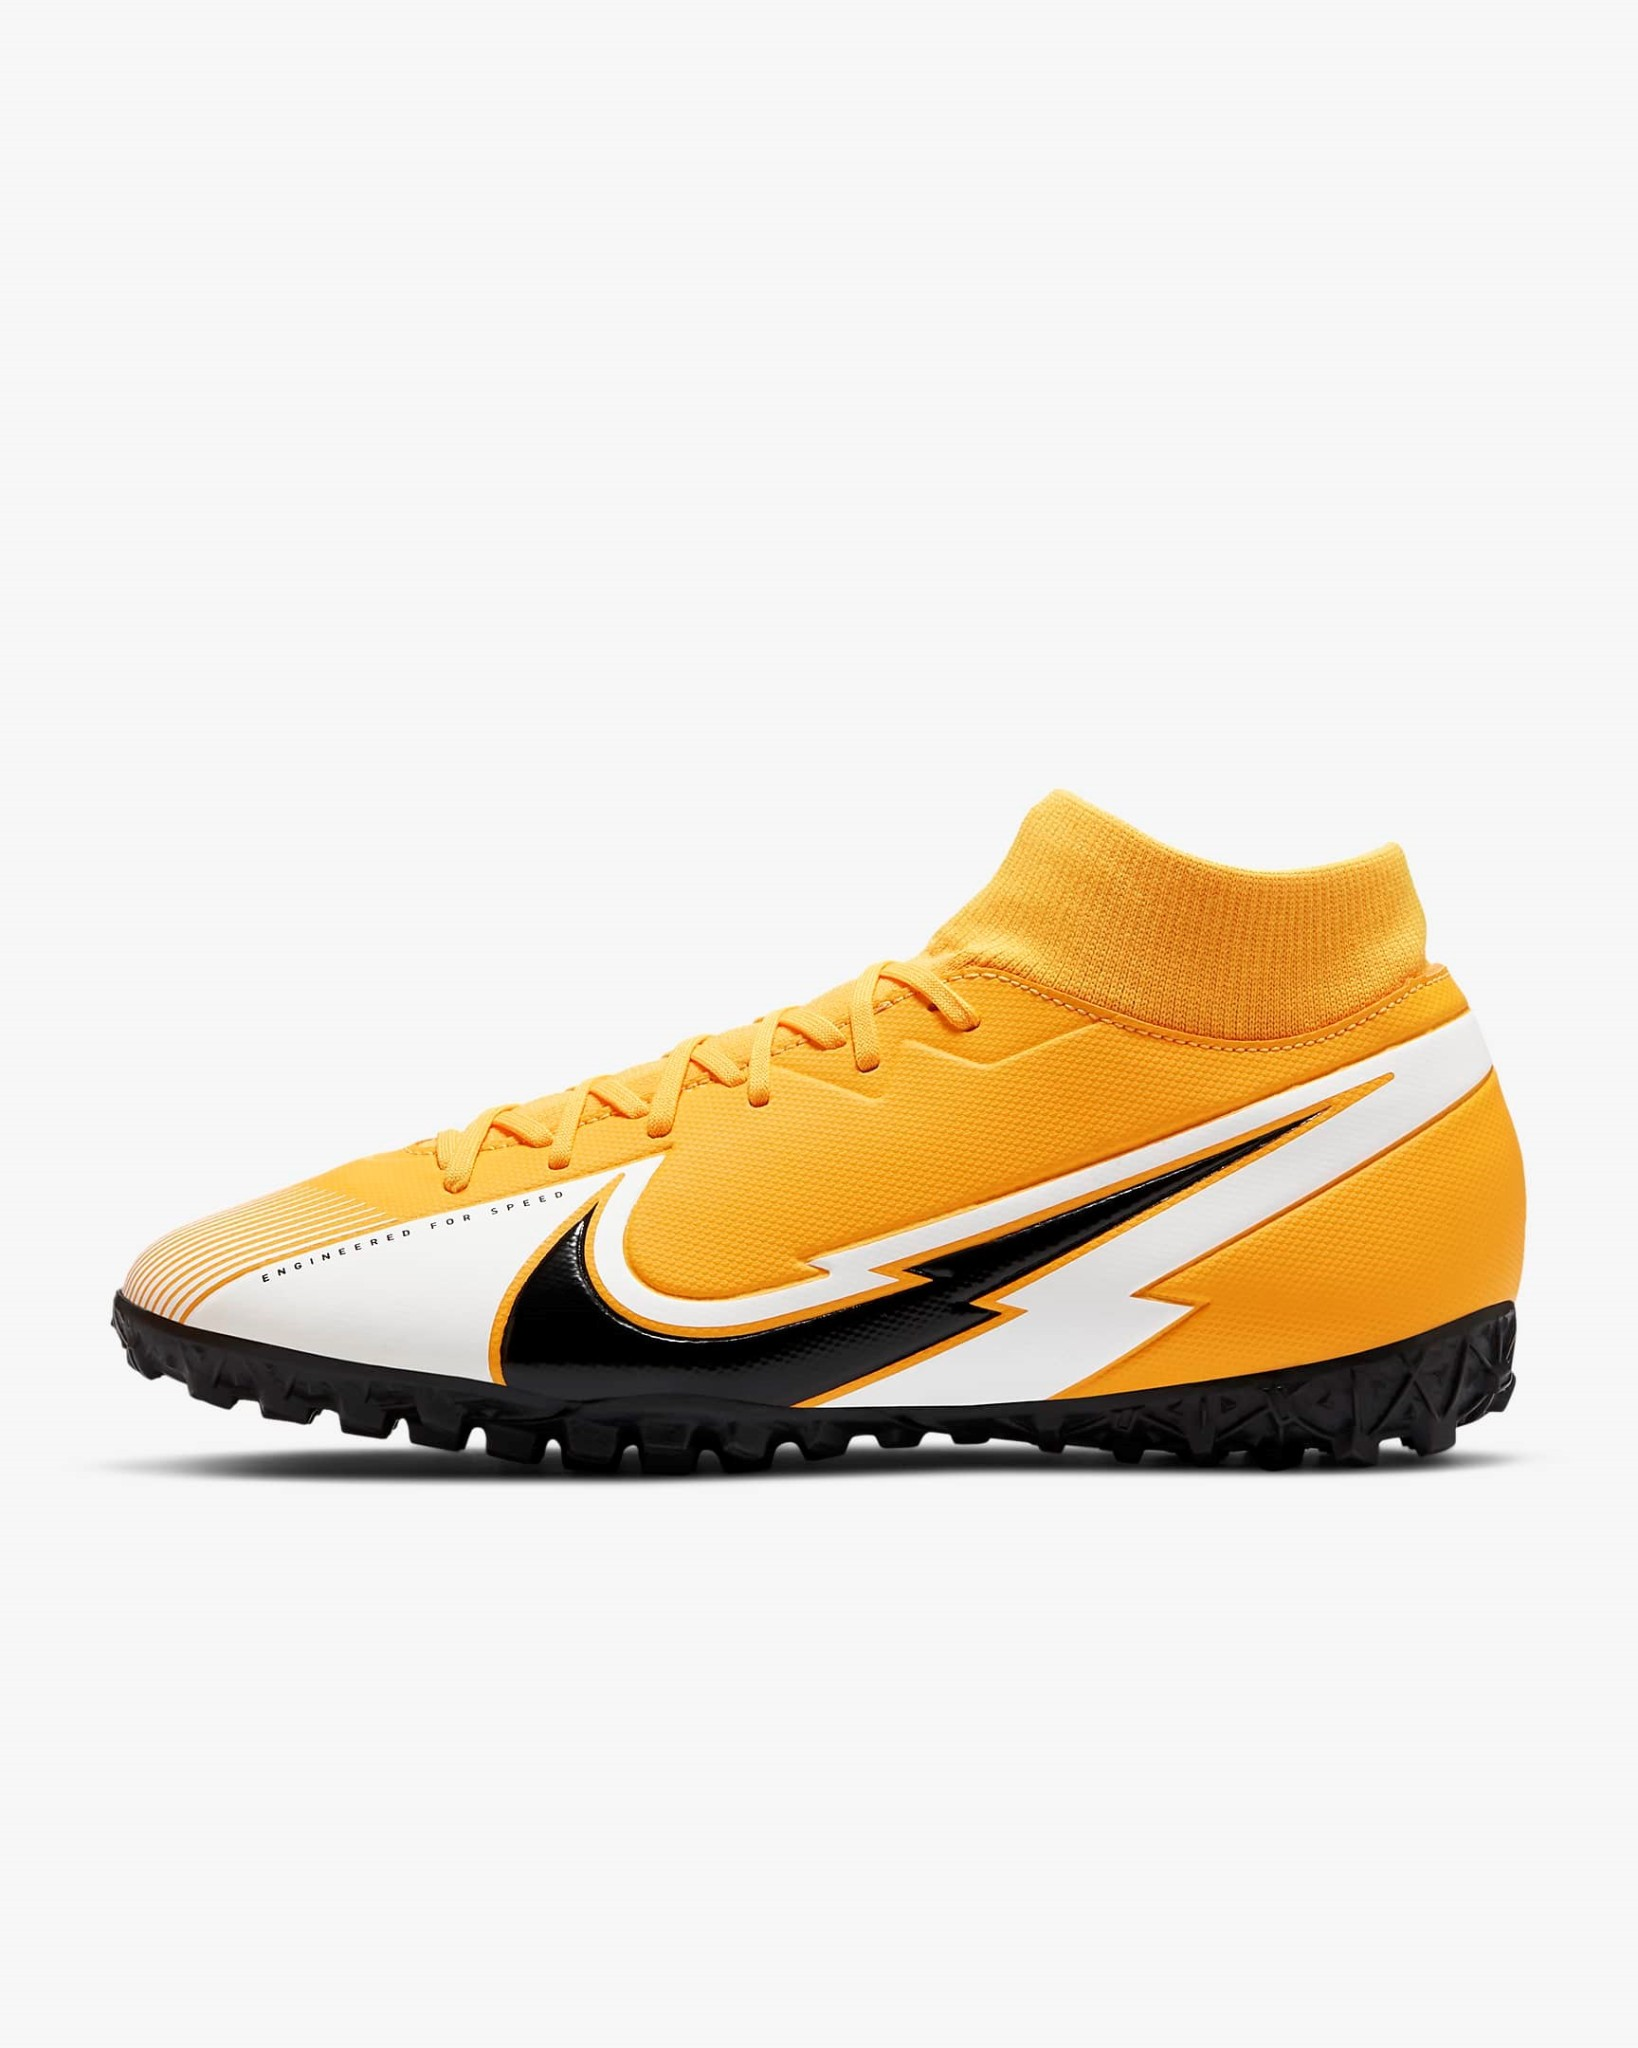 MERCURIAL SUPERFLY 7 ACADEMY TF DAYBREAK PACK